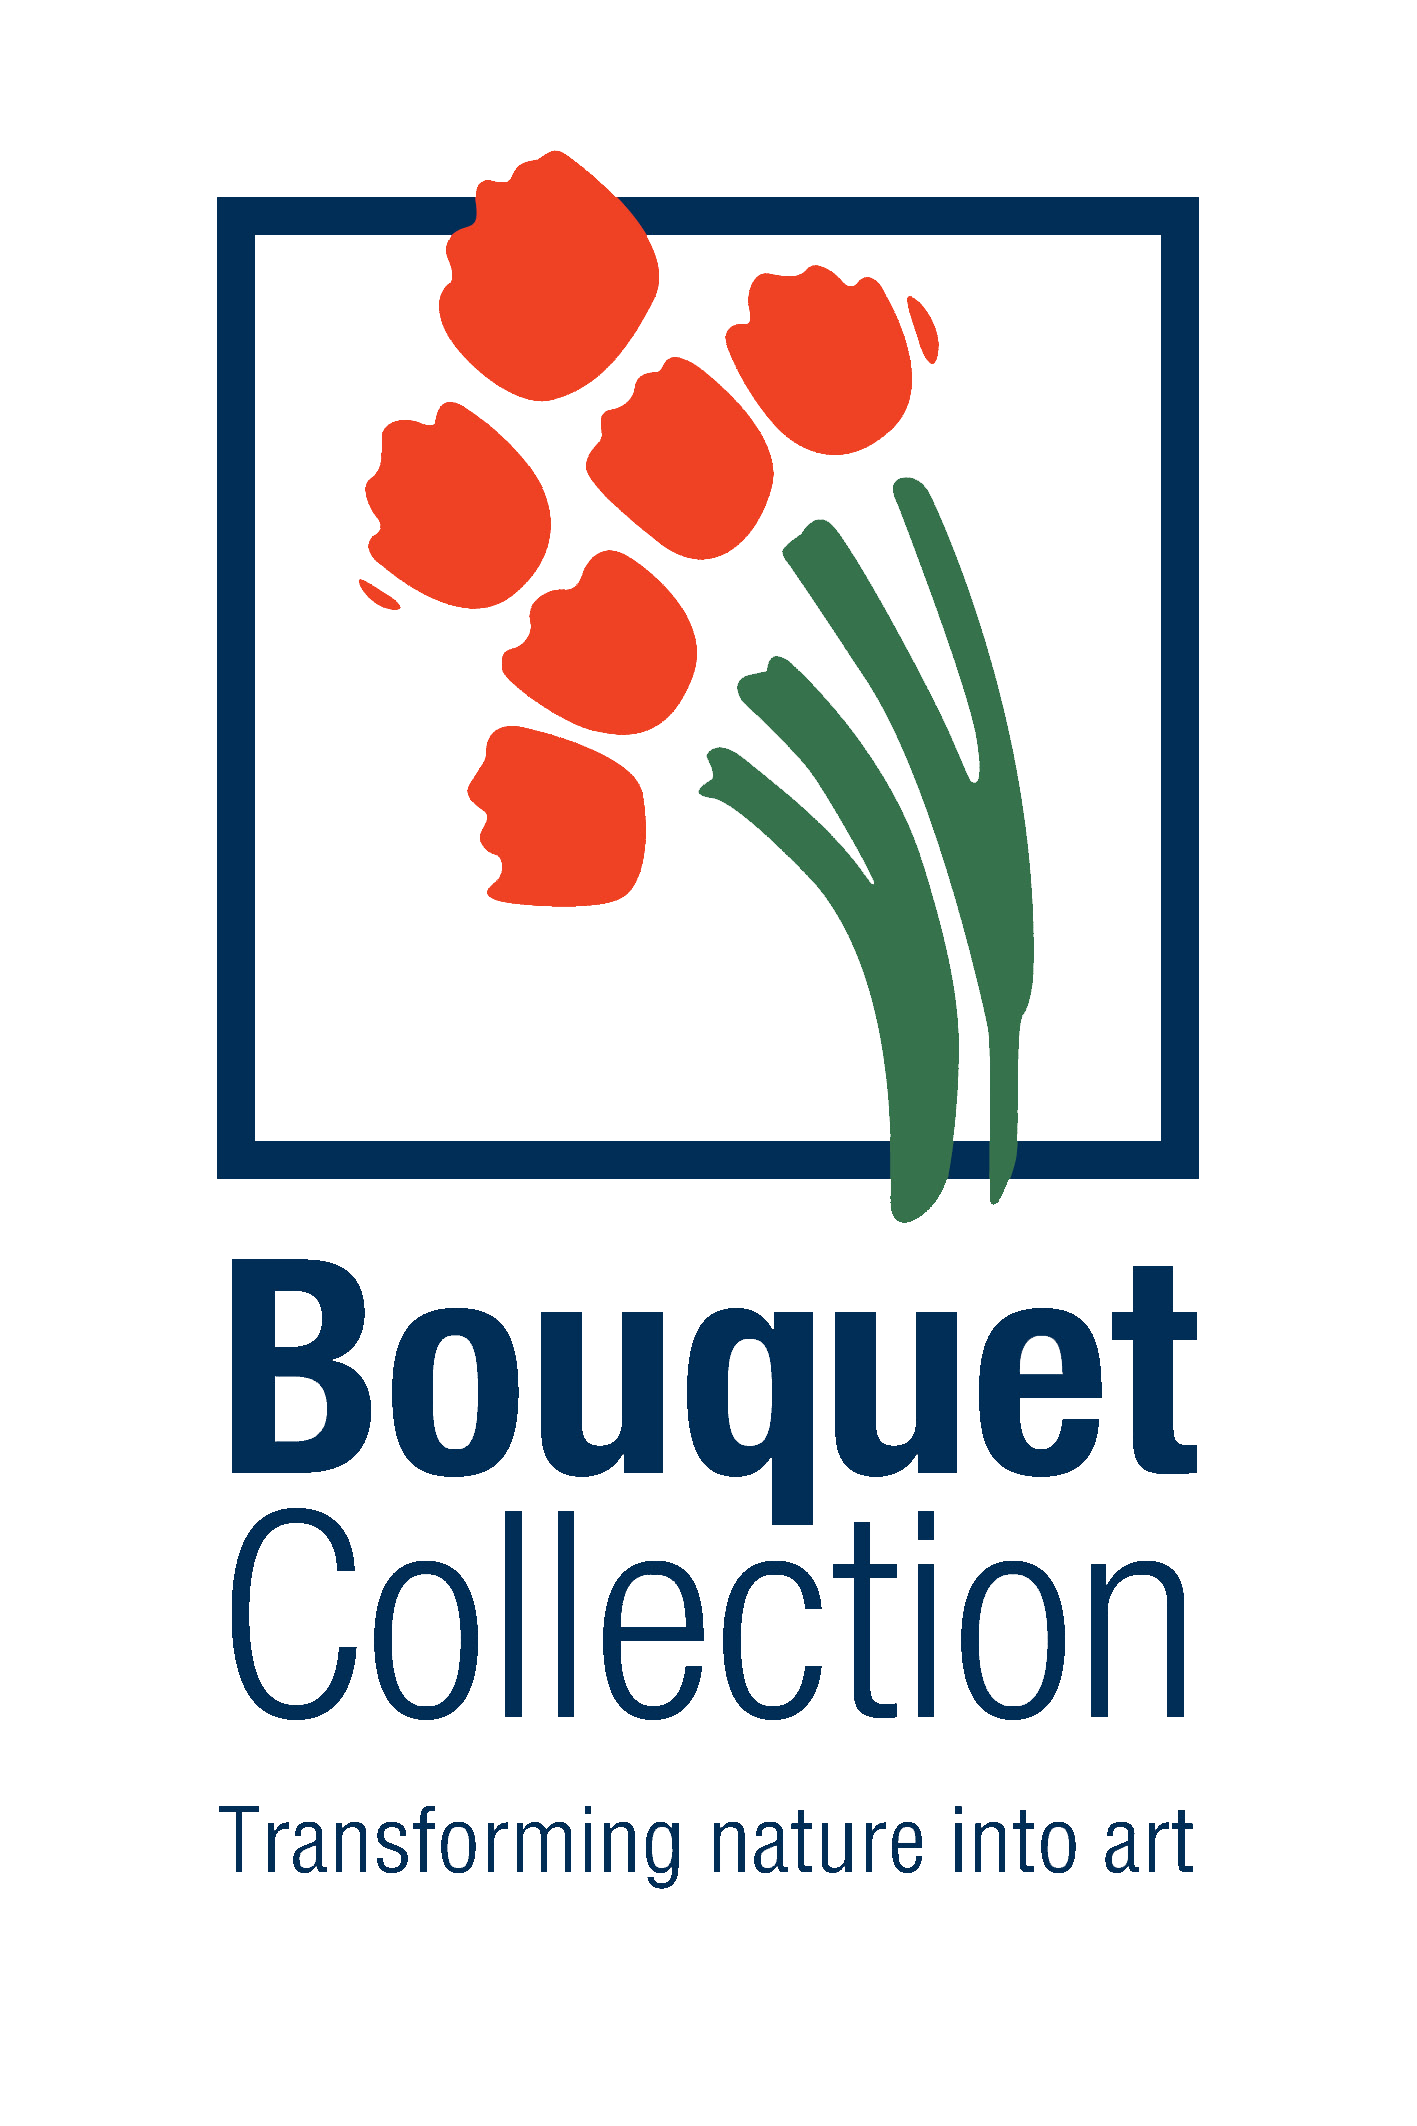 bouquet_collection_LOGO.png